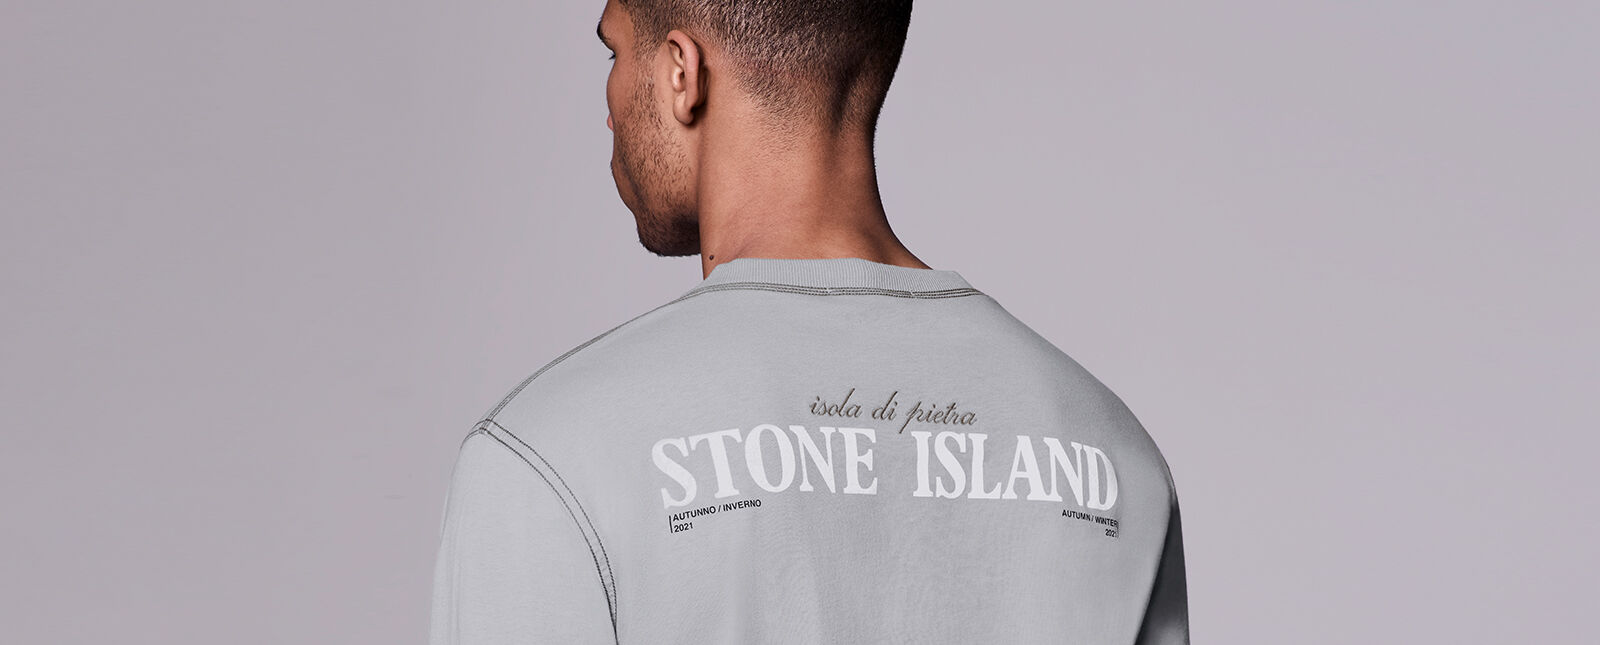 Close up shot of model showing the back of a light gray shirt with contrast dark stitching and lettering that reads isola di pietra STONE ISLAND AUTUNNO / INVERNO 2021 AUTUMN / WINTER 2021.